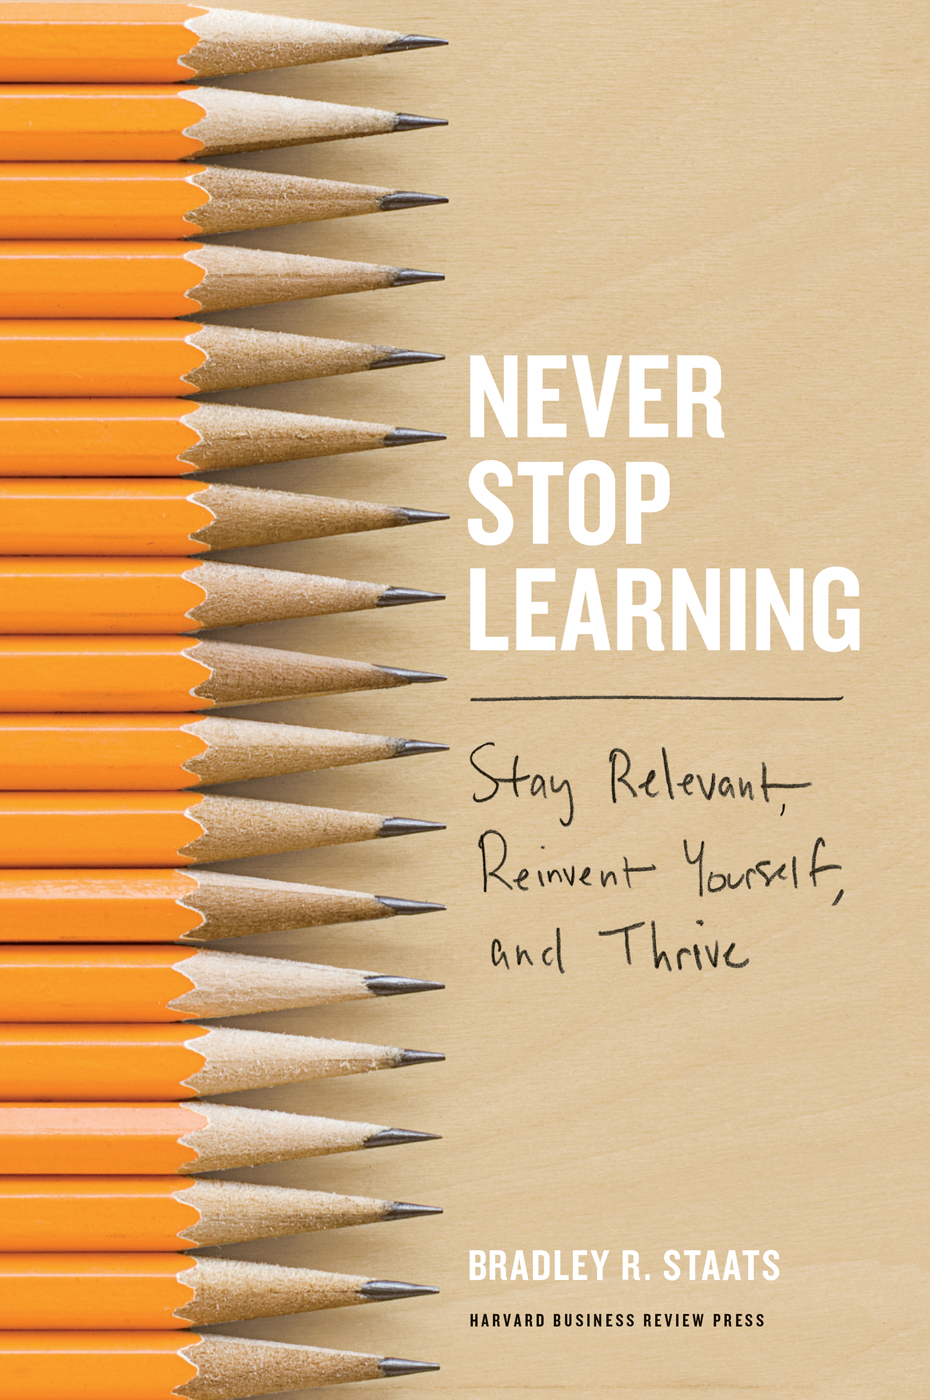 Book Review: Never Stop Learning – Stay relevant, reinvent yourself, and thrive